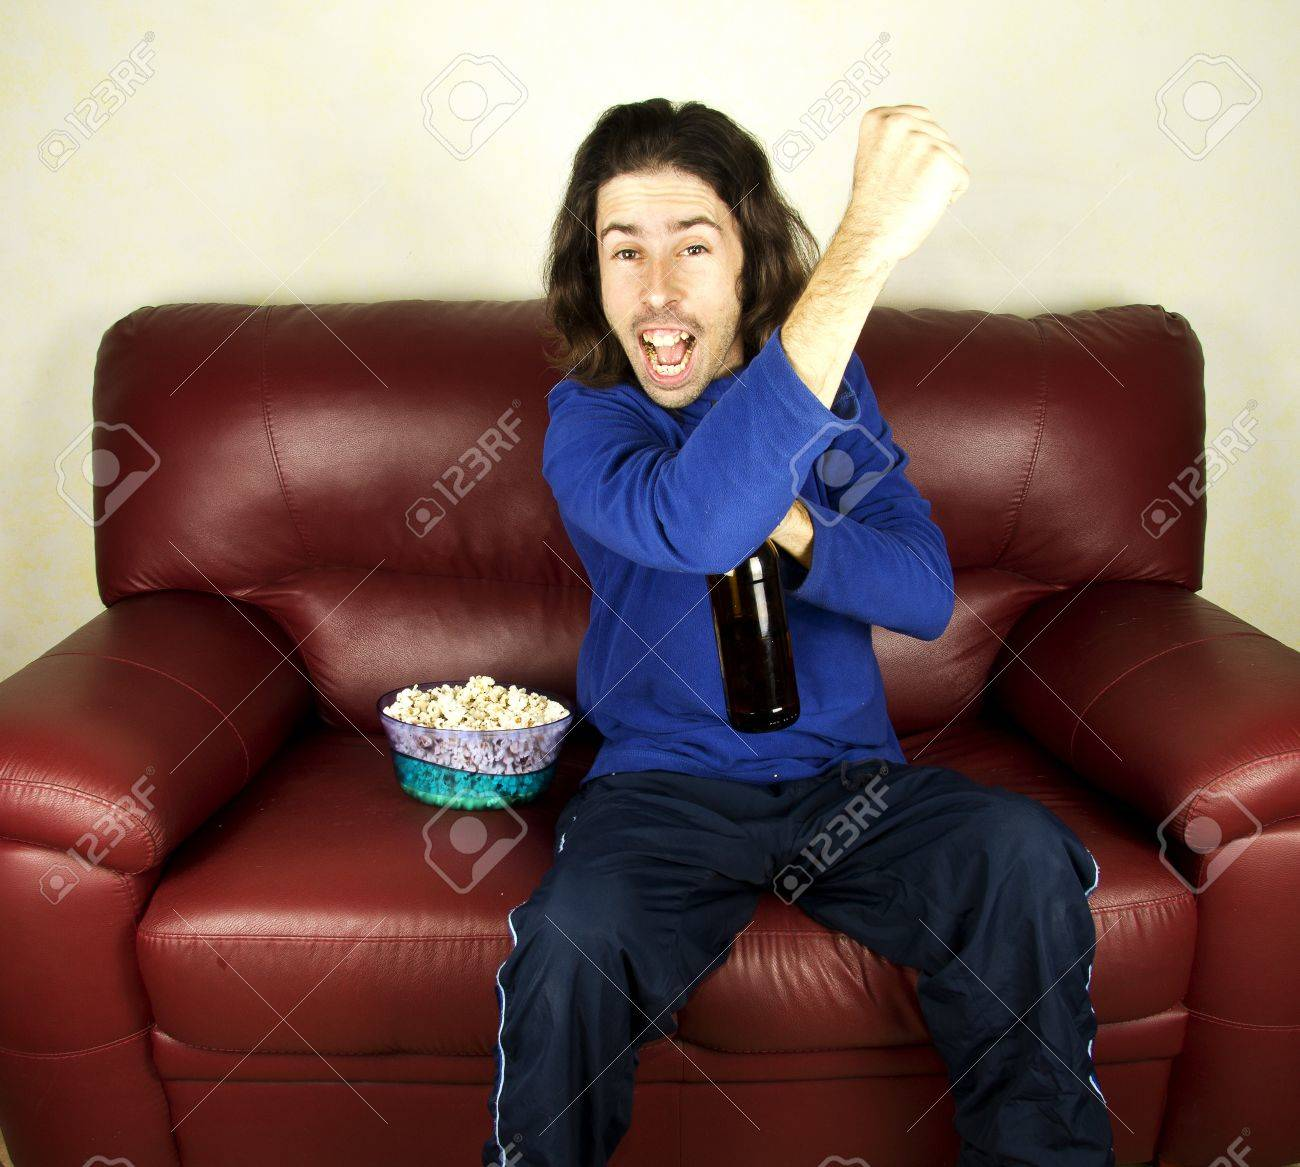 a young man look the football on the couch Stock Photo - 17603685